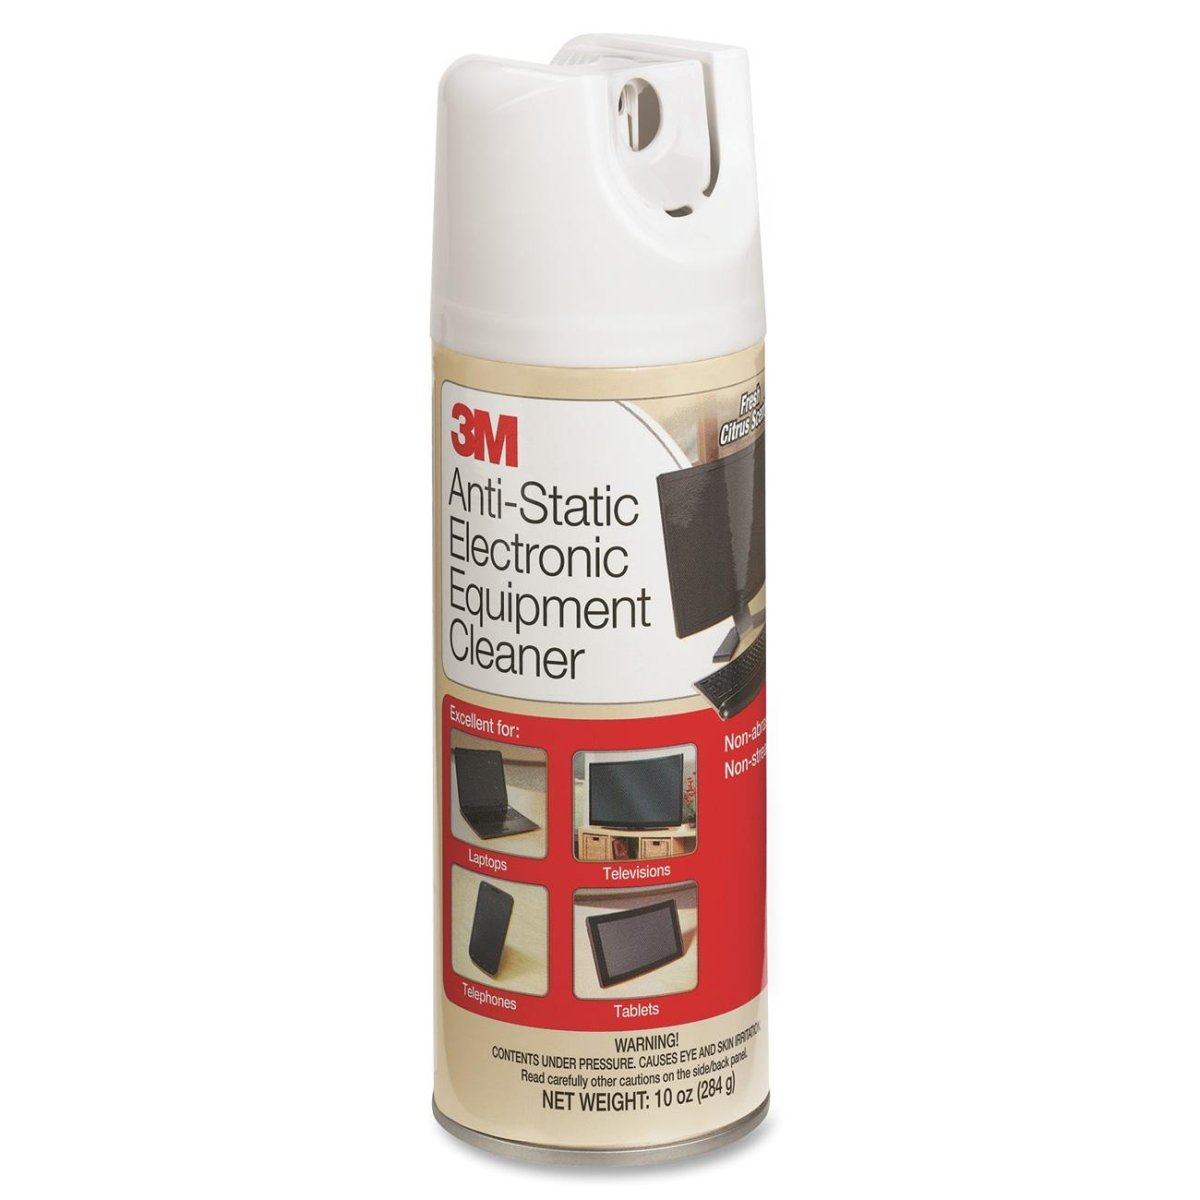 3M/COMMERCIAL TAPE DIV. Antistatic Electronic Equipment Cleaner, Oil/Wax-Free, 10oz Aerosol (CL600)